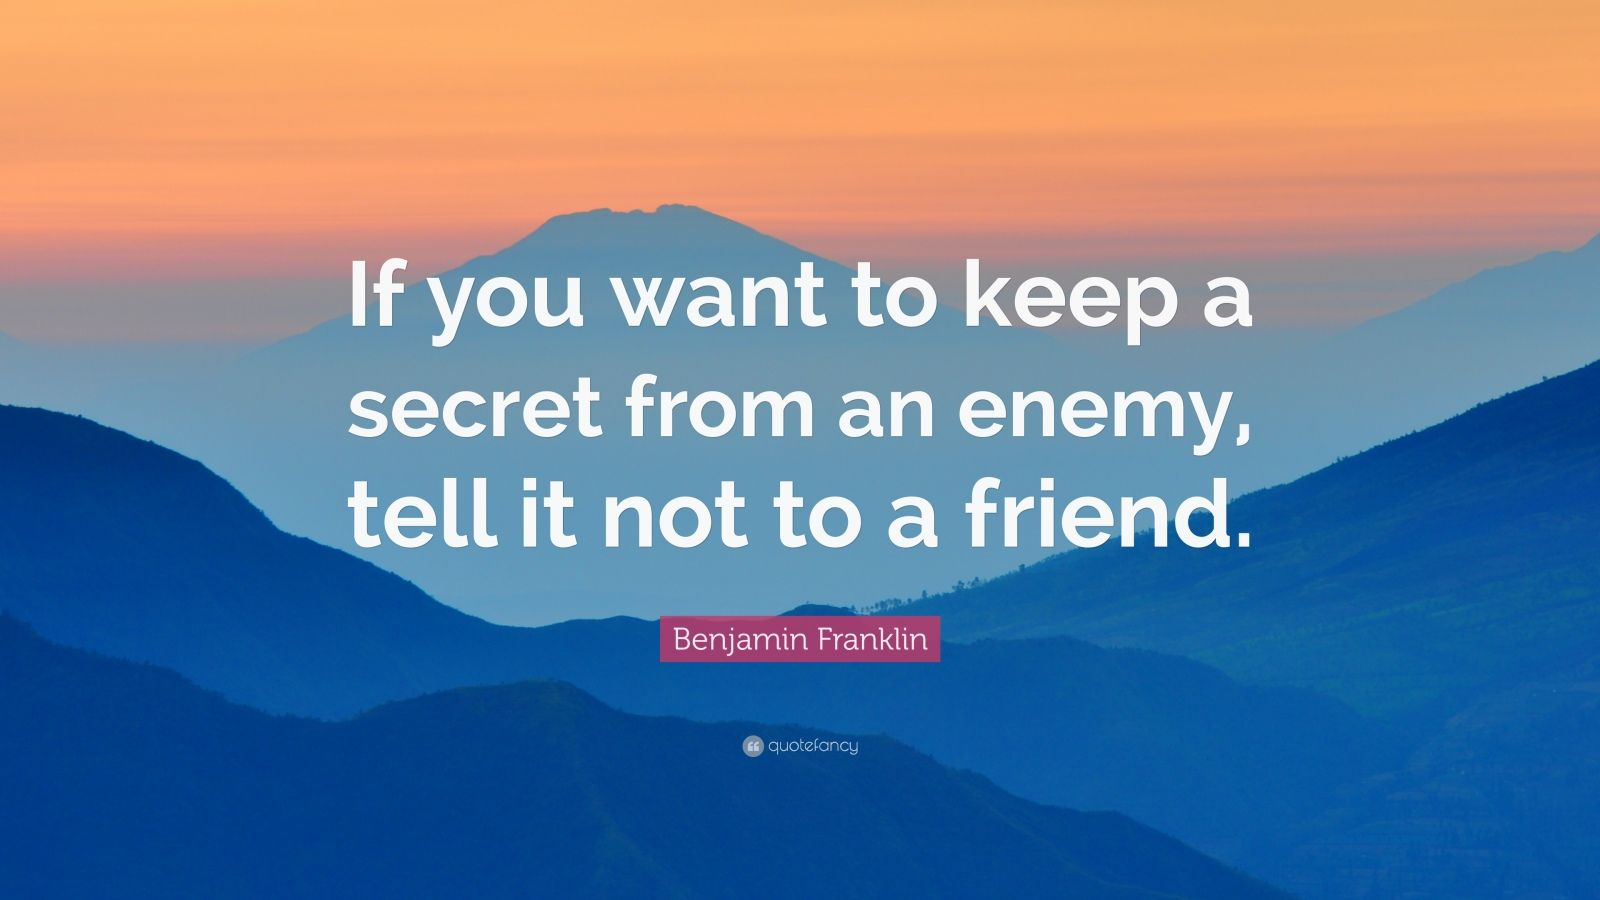 """Benjamin Franklin Quote: """"If you want to keep a secret from an enemy, tell it not to a friend."""""""